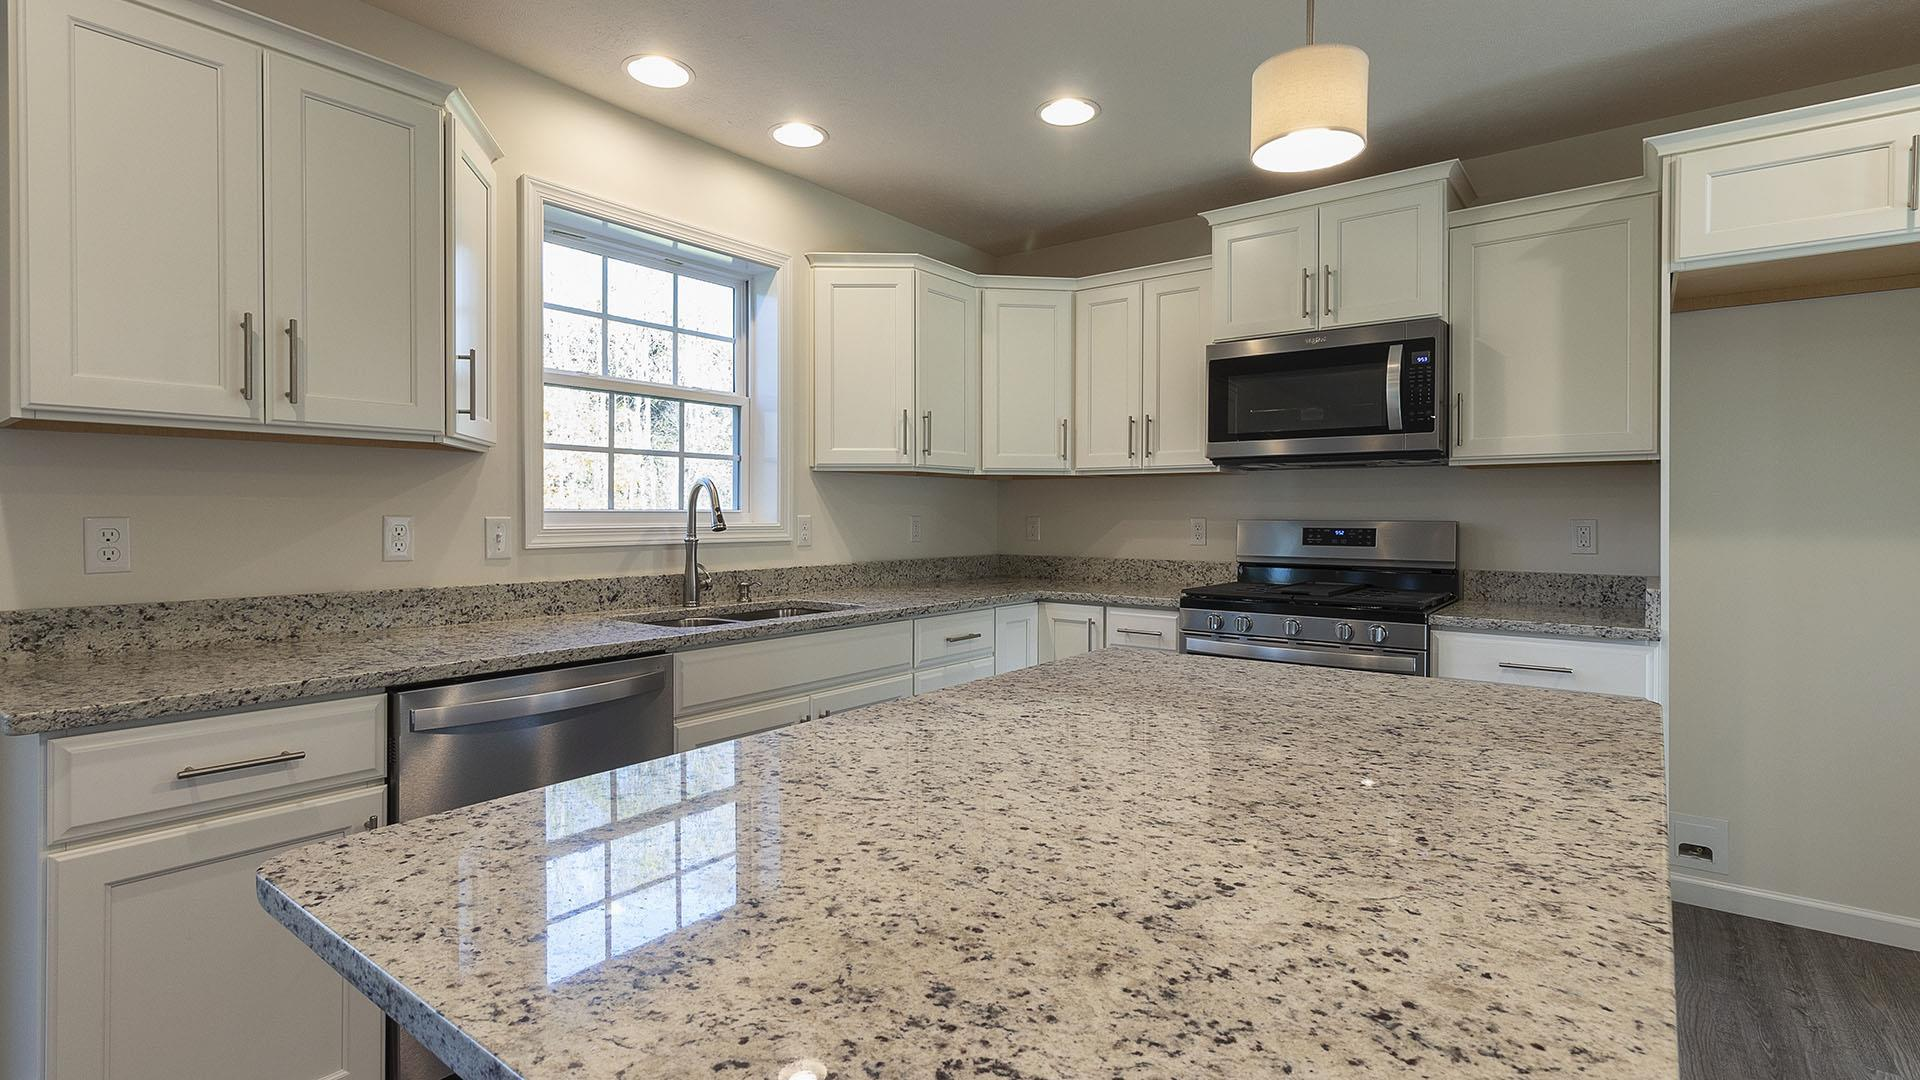 Kitchen featured in the Greenwood  By S & A Homes in Altoona, PA